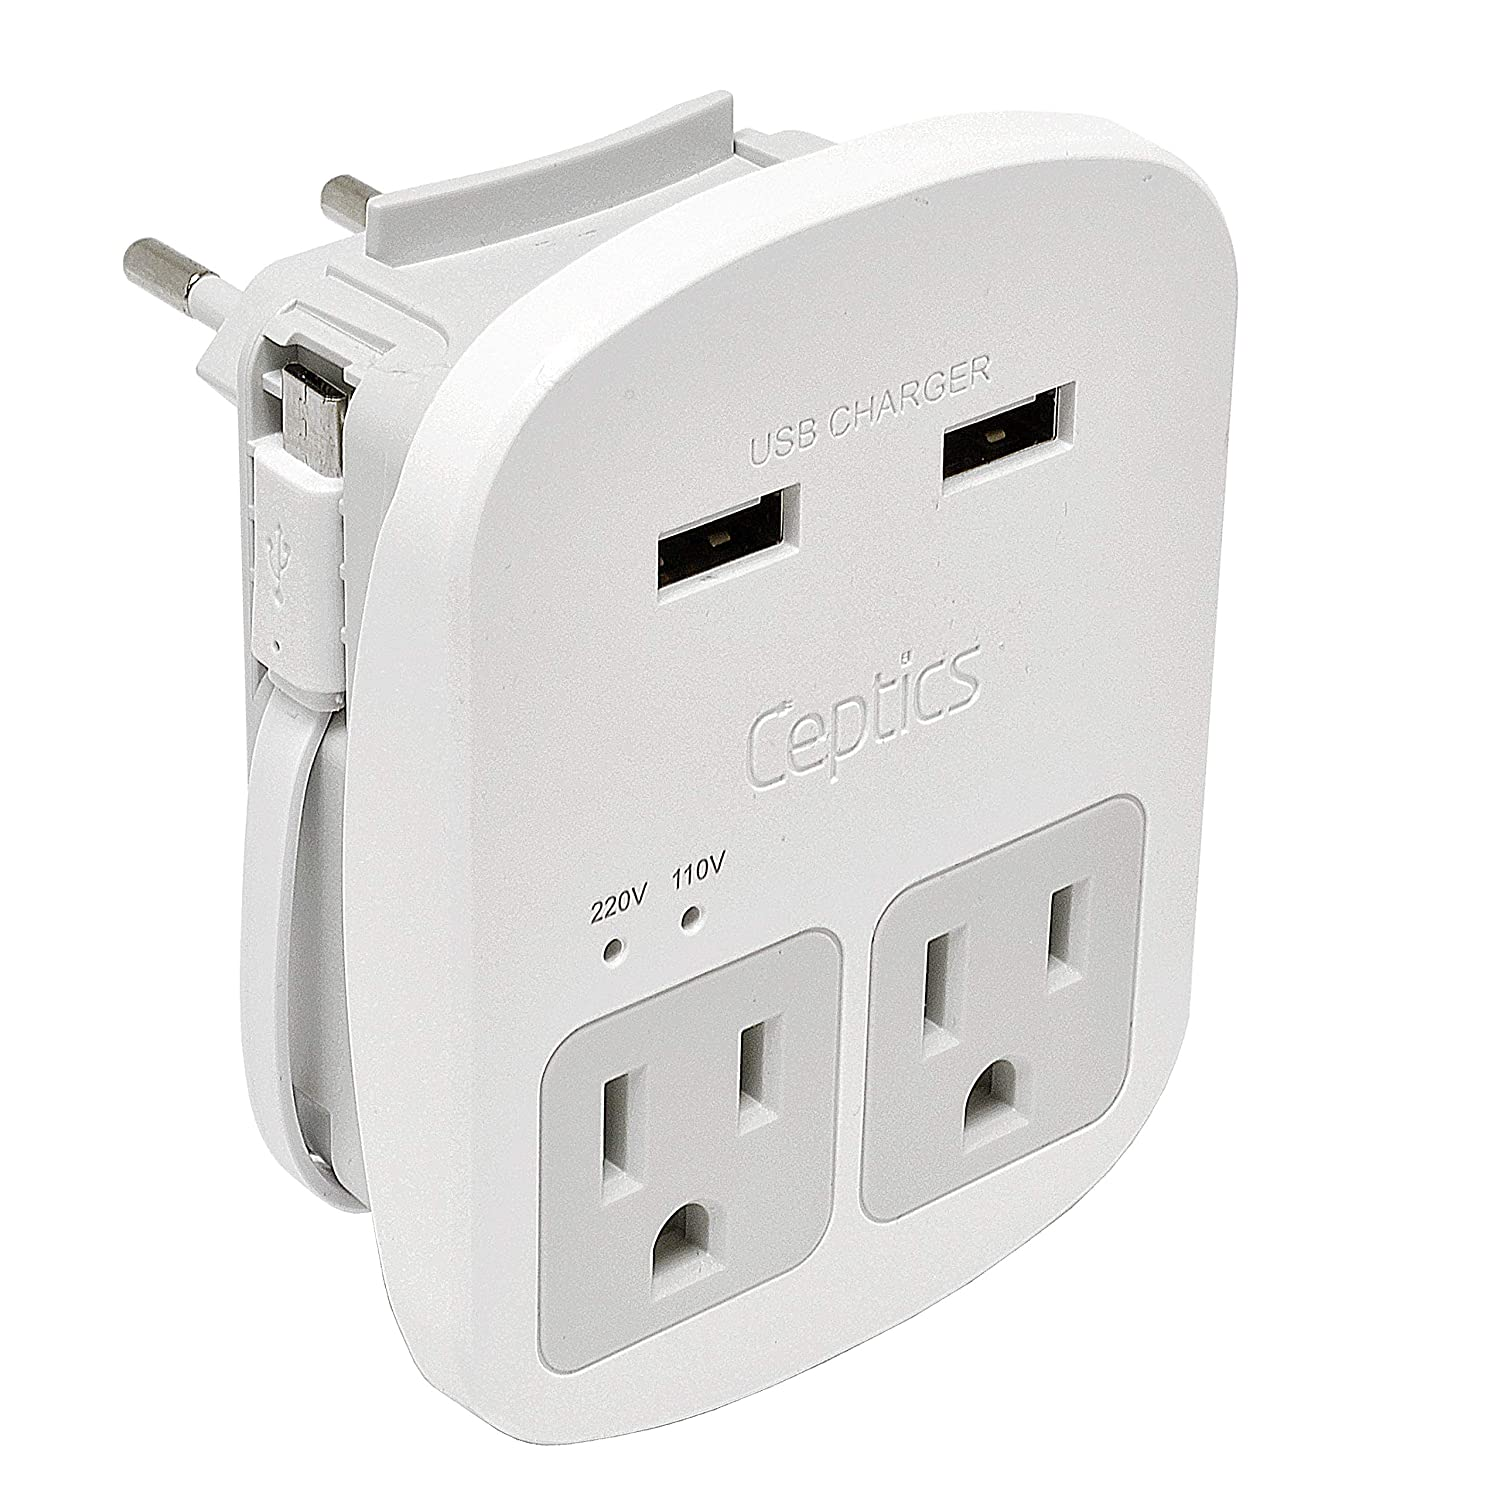 European International Travel Adapter Plug Kit Grounded Dual USB - 2 USA Outlets Input Plugs for Europe, Asia, China, USA, South America, and More - Surge Protection by Ceptics